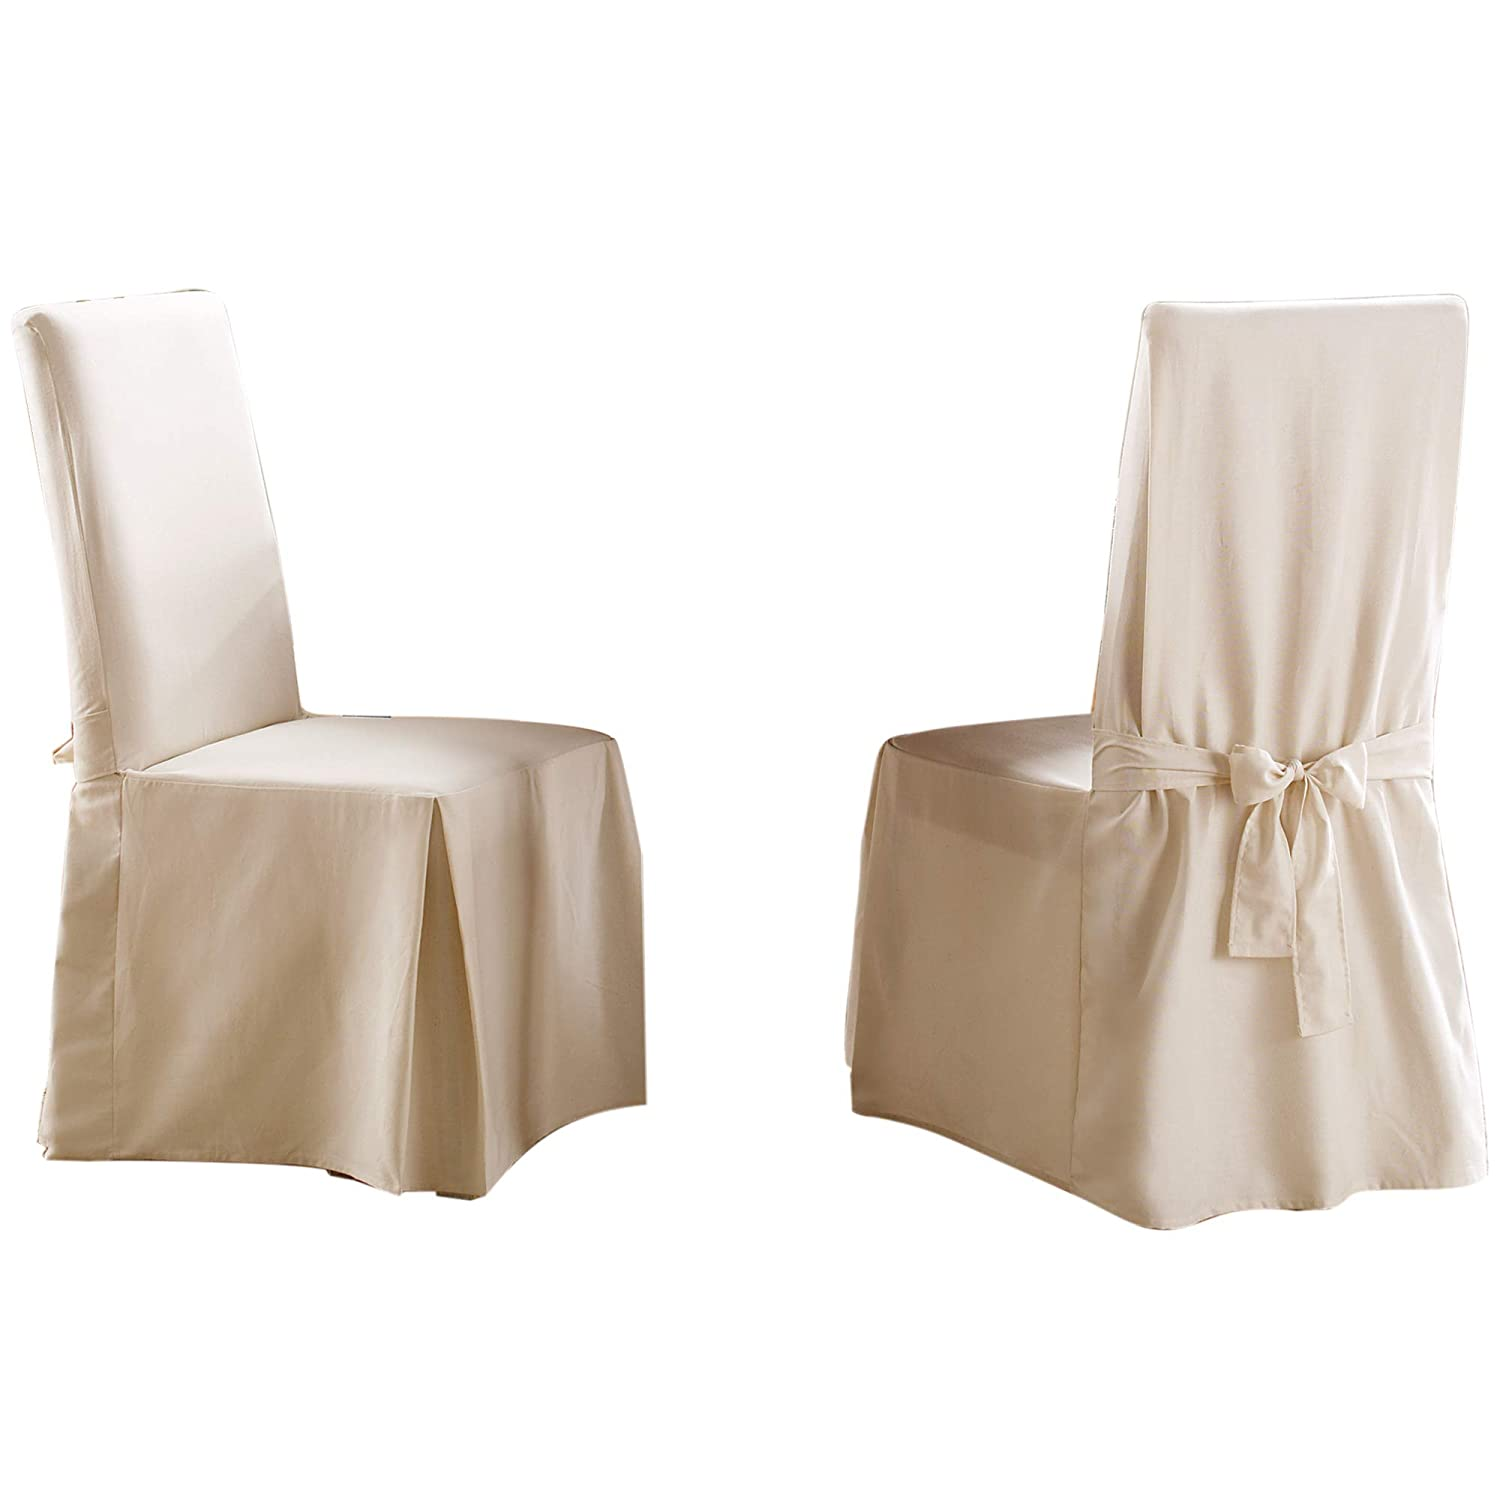 Fabulous Surefit Long Dining Chair Slipcover Cotton Duck Up To 42 Inches Tall Machine Washable 100 Cotton Natural Andrewgaddart Wooden Chair Designs For Living Room Andrewgaddartcom